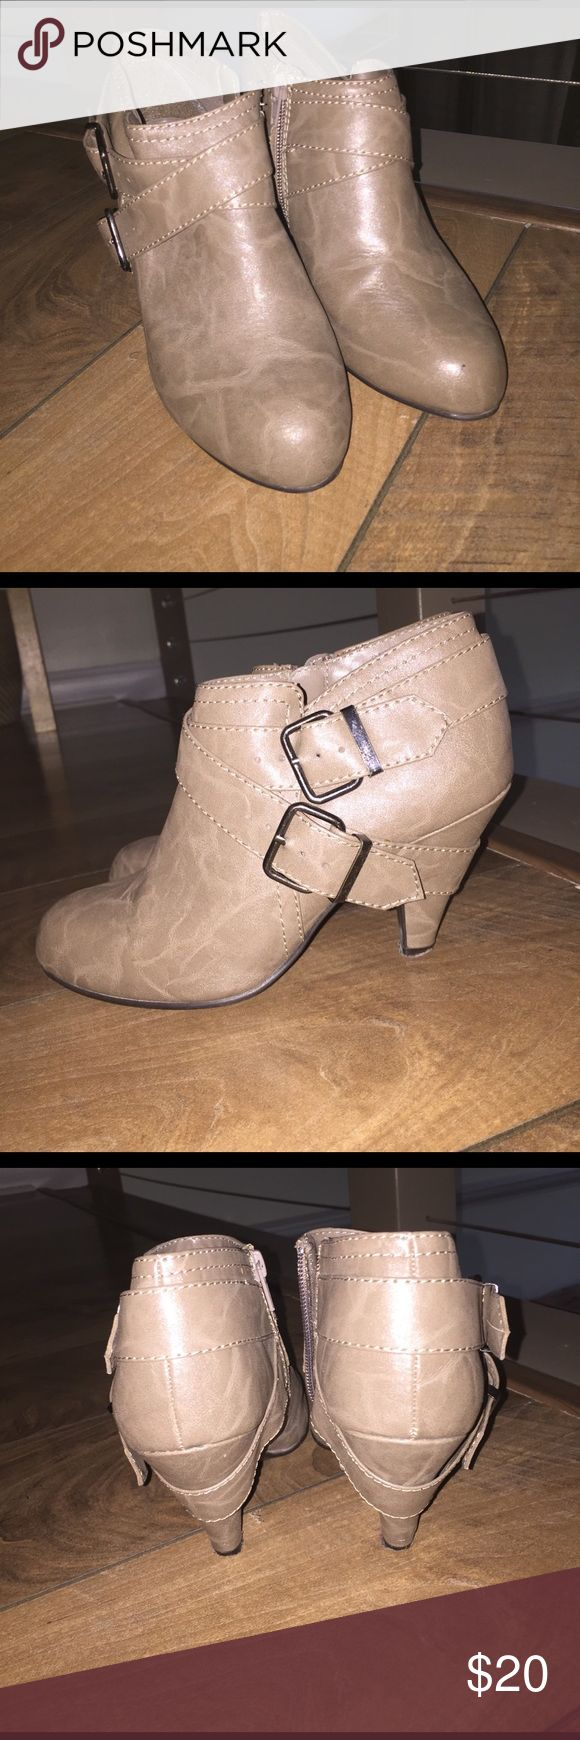 Gray leather ankle boots with buckles, zipper side Gray leather ankle boots with buckles, zipper side New Look Shoes Ankle Boots & Booties